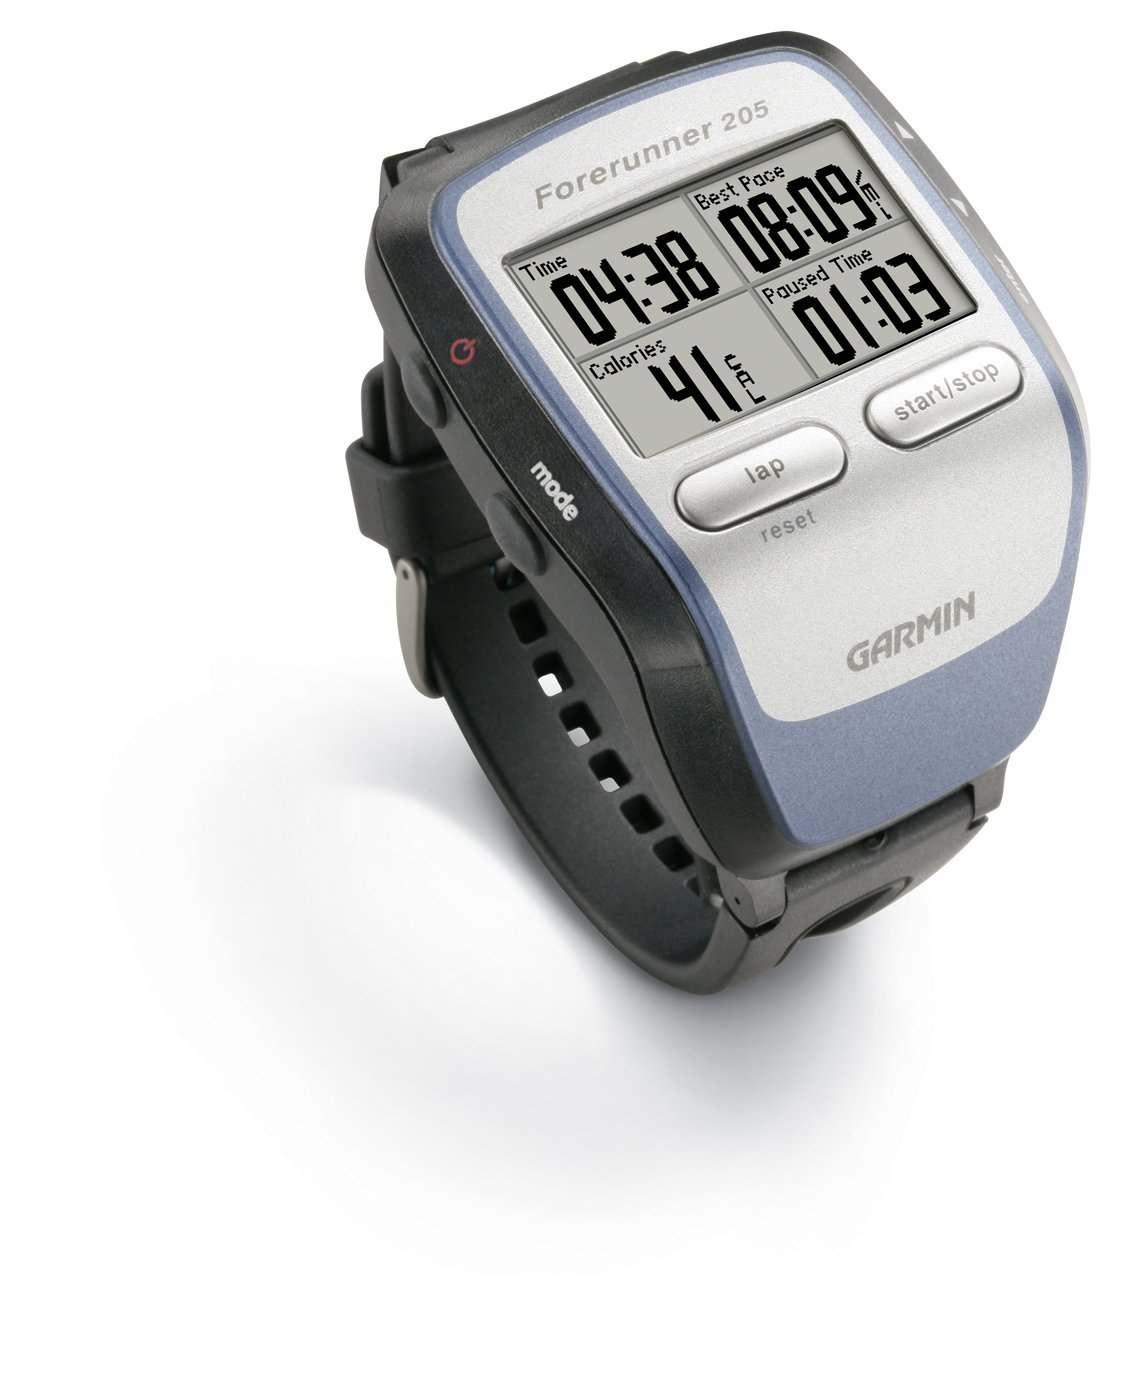 Amazon.com: Garmin Forerunner 205 GPS Receiver and Sports Watch  (Discontinued by Manufacturer): Garmin: Home Audio & Theater